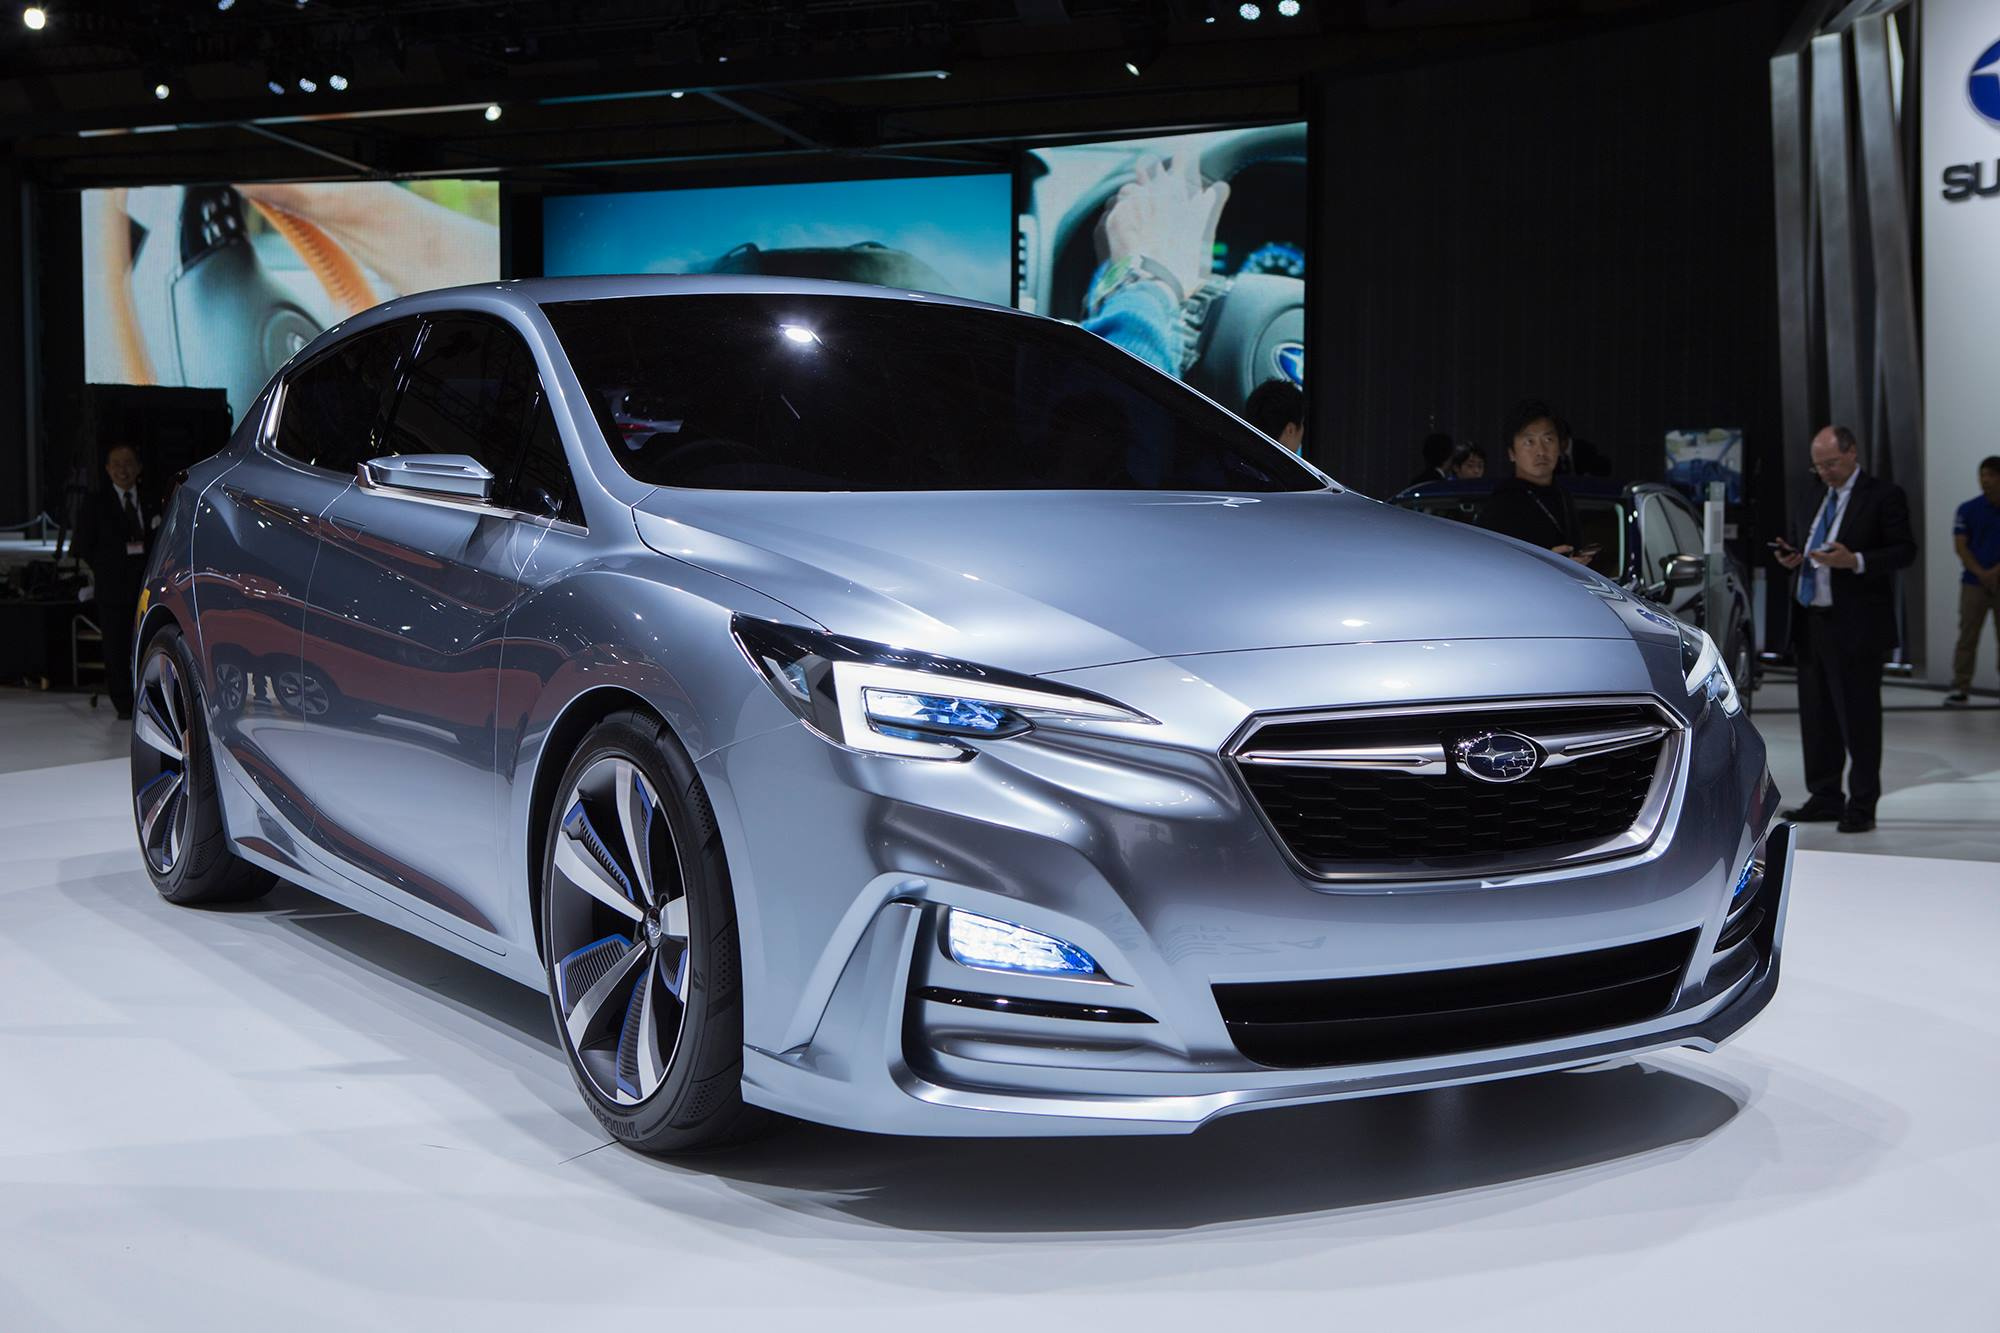 subaru previews 2017 impreza with 5 door concept in tokyo autoevolution. Black Bedroom Furniture Sets. Home Design Ideas